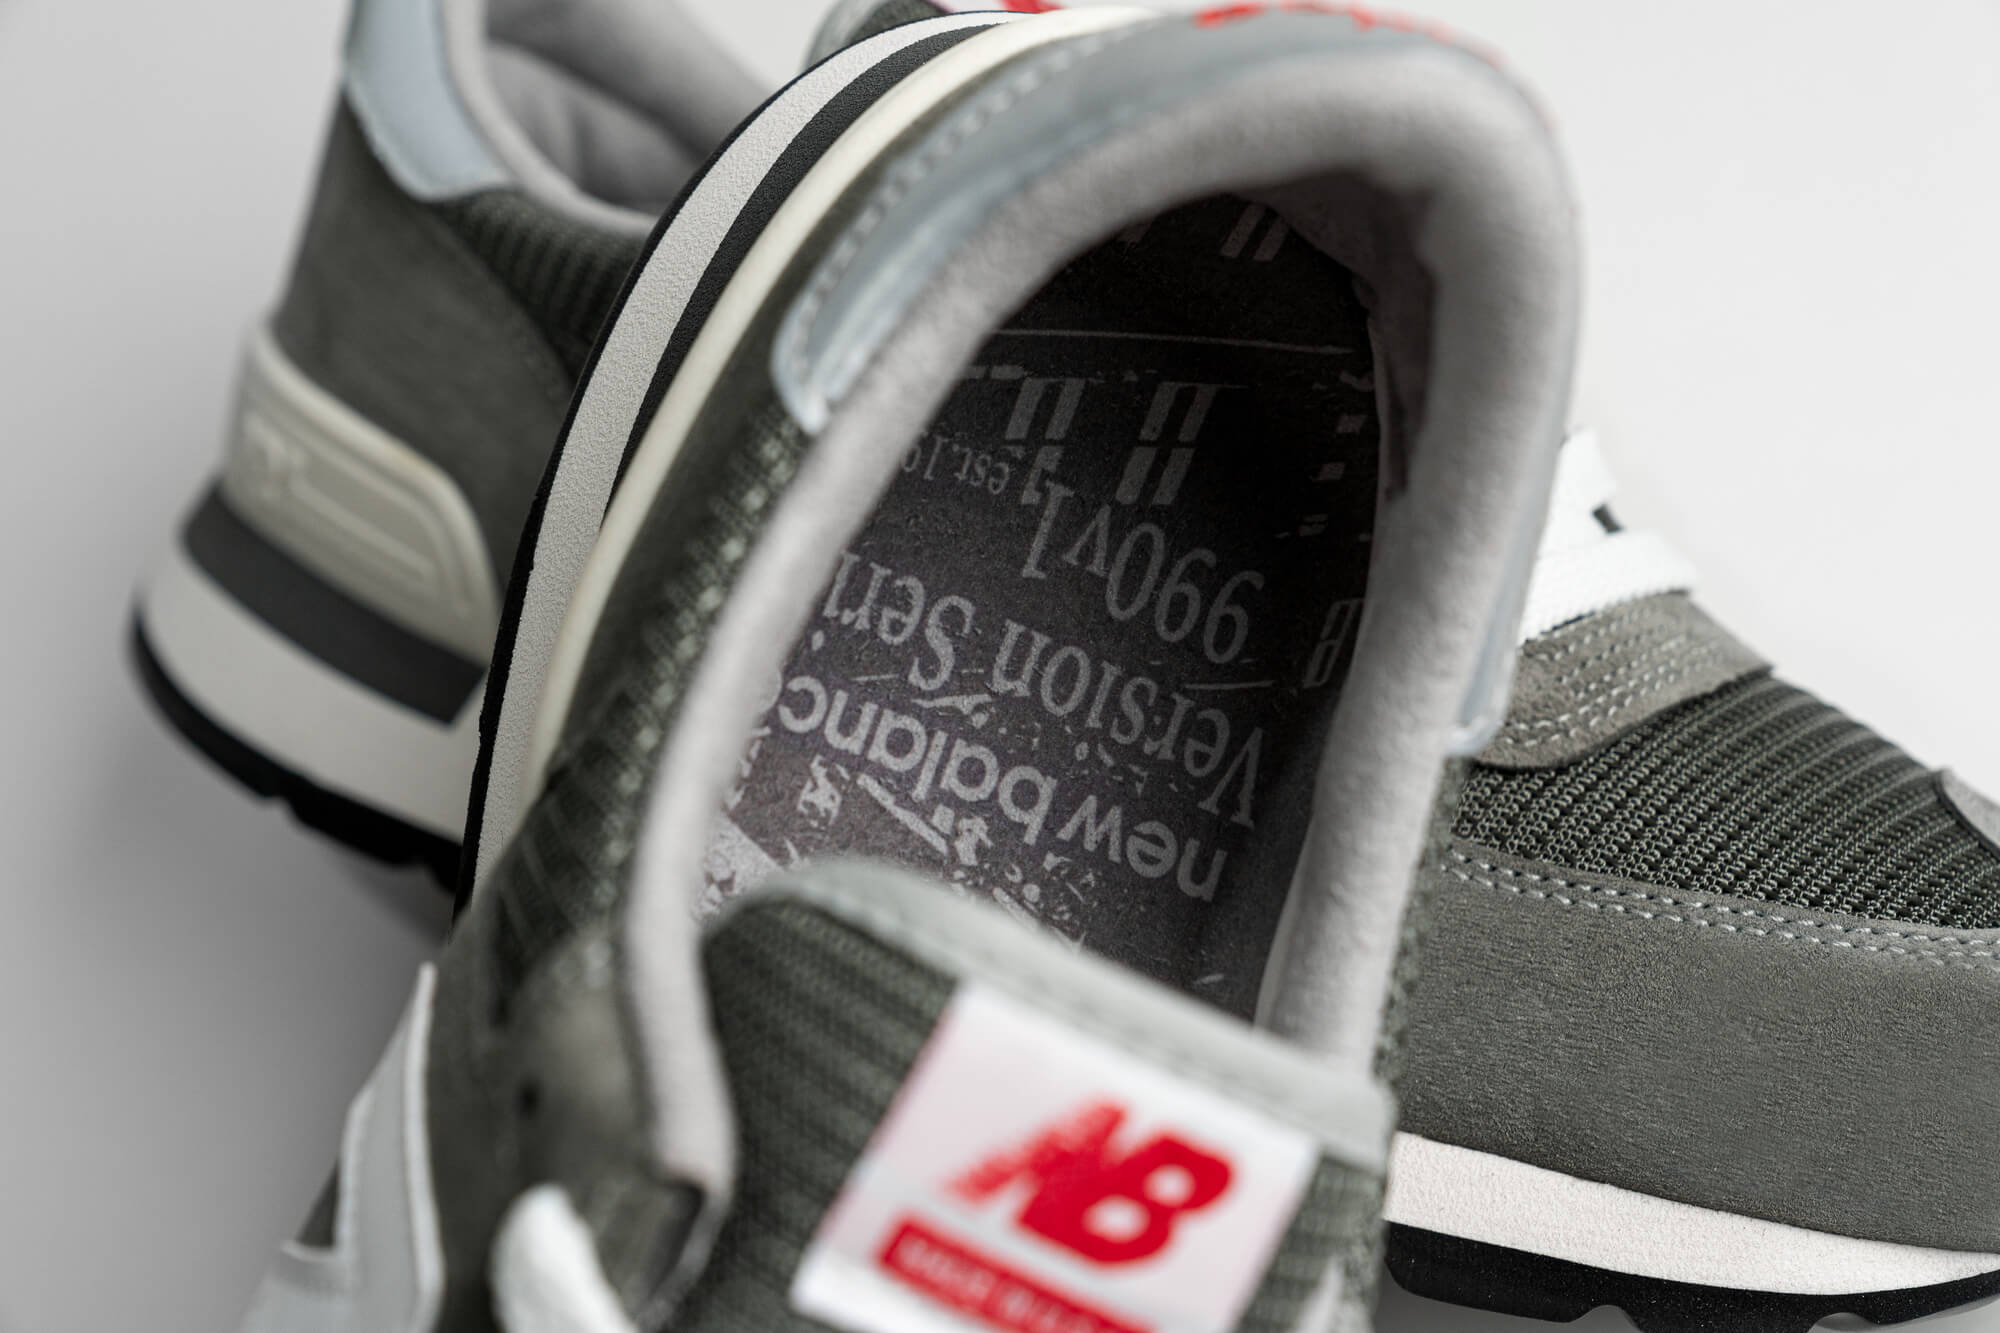 insole detail  New Balance - Made 990 Version Series - Version 1 - 990v1